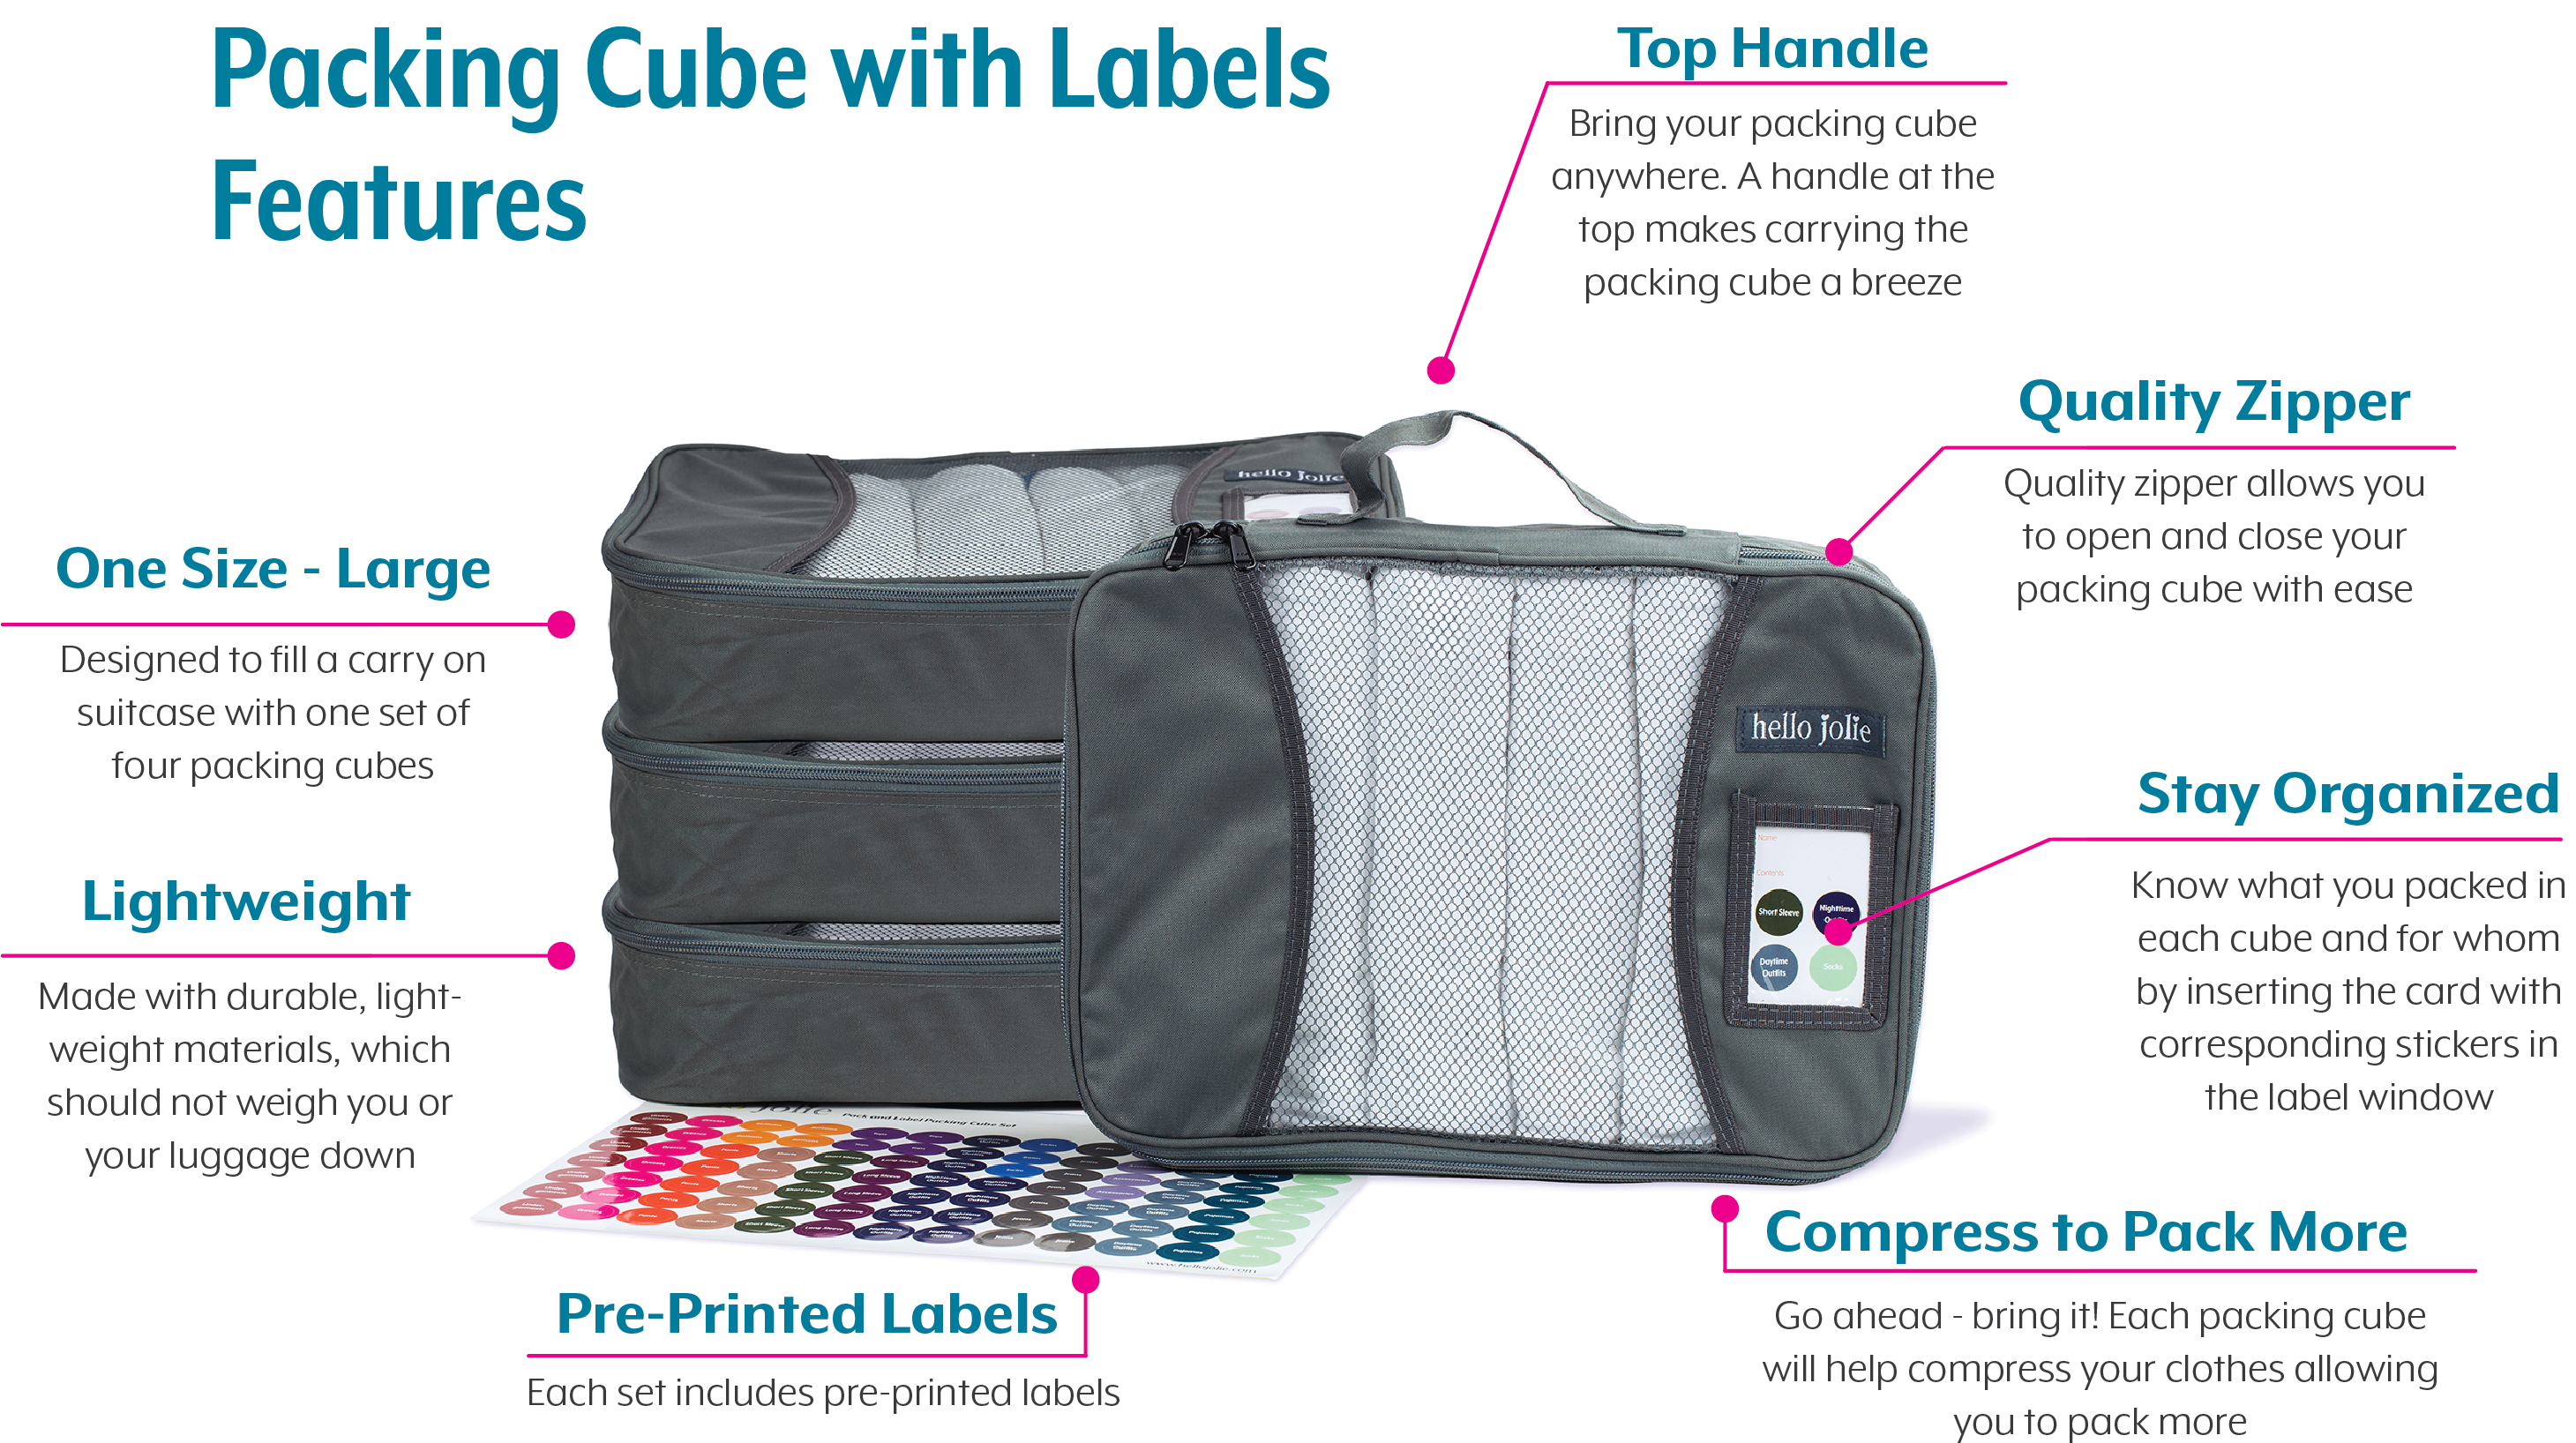 Packing Cube with Labels